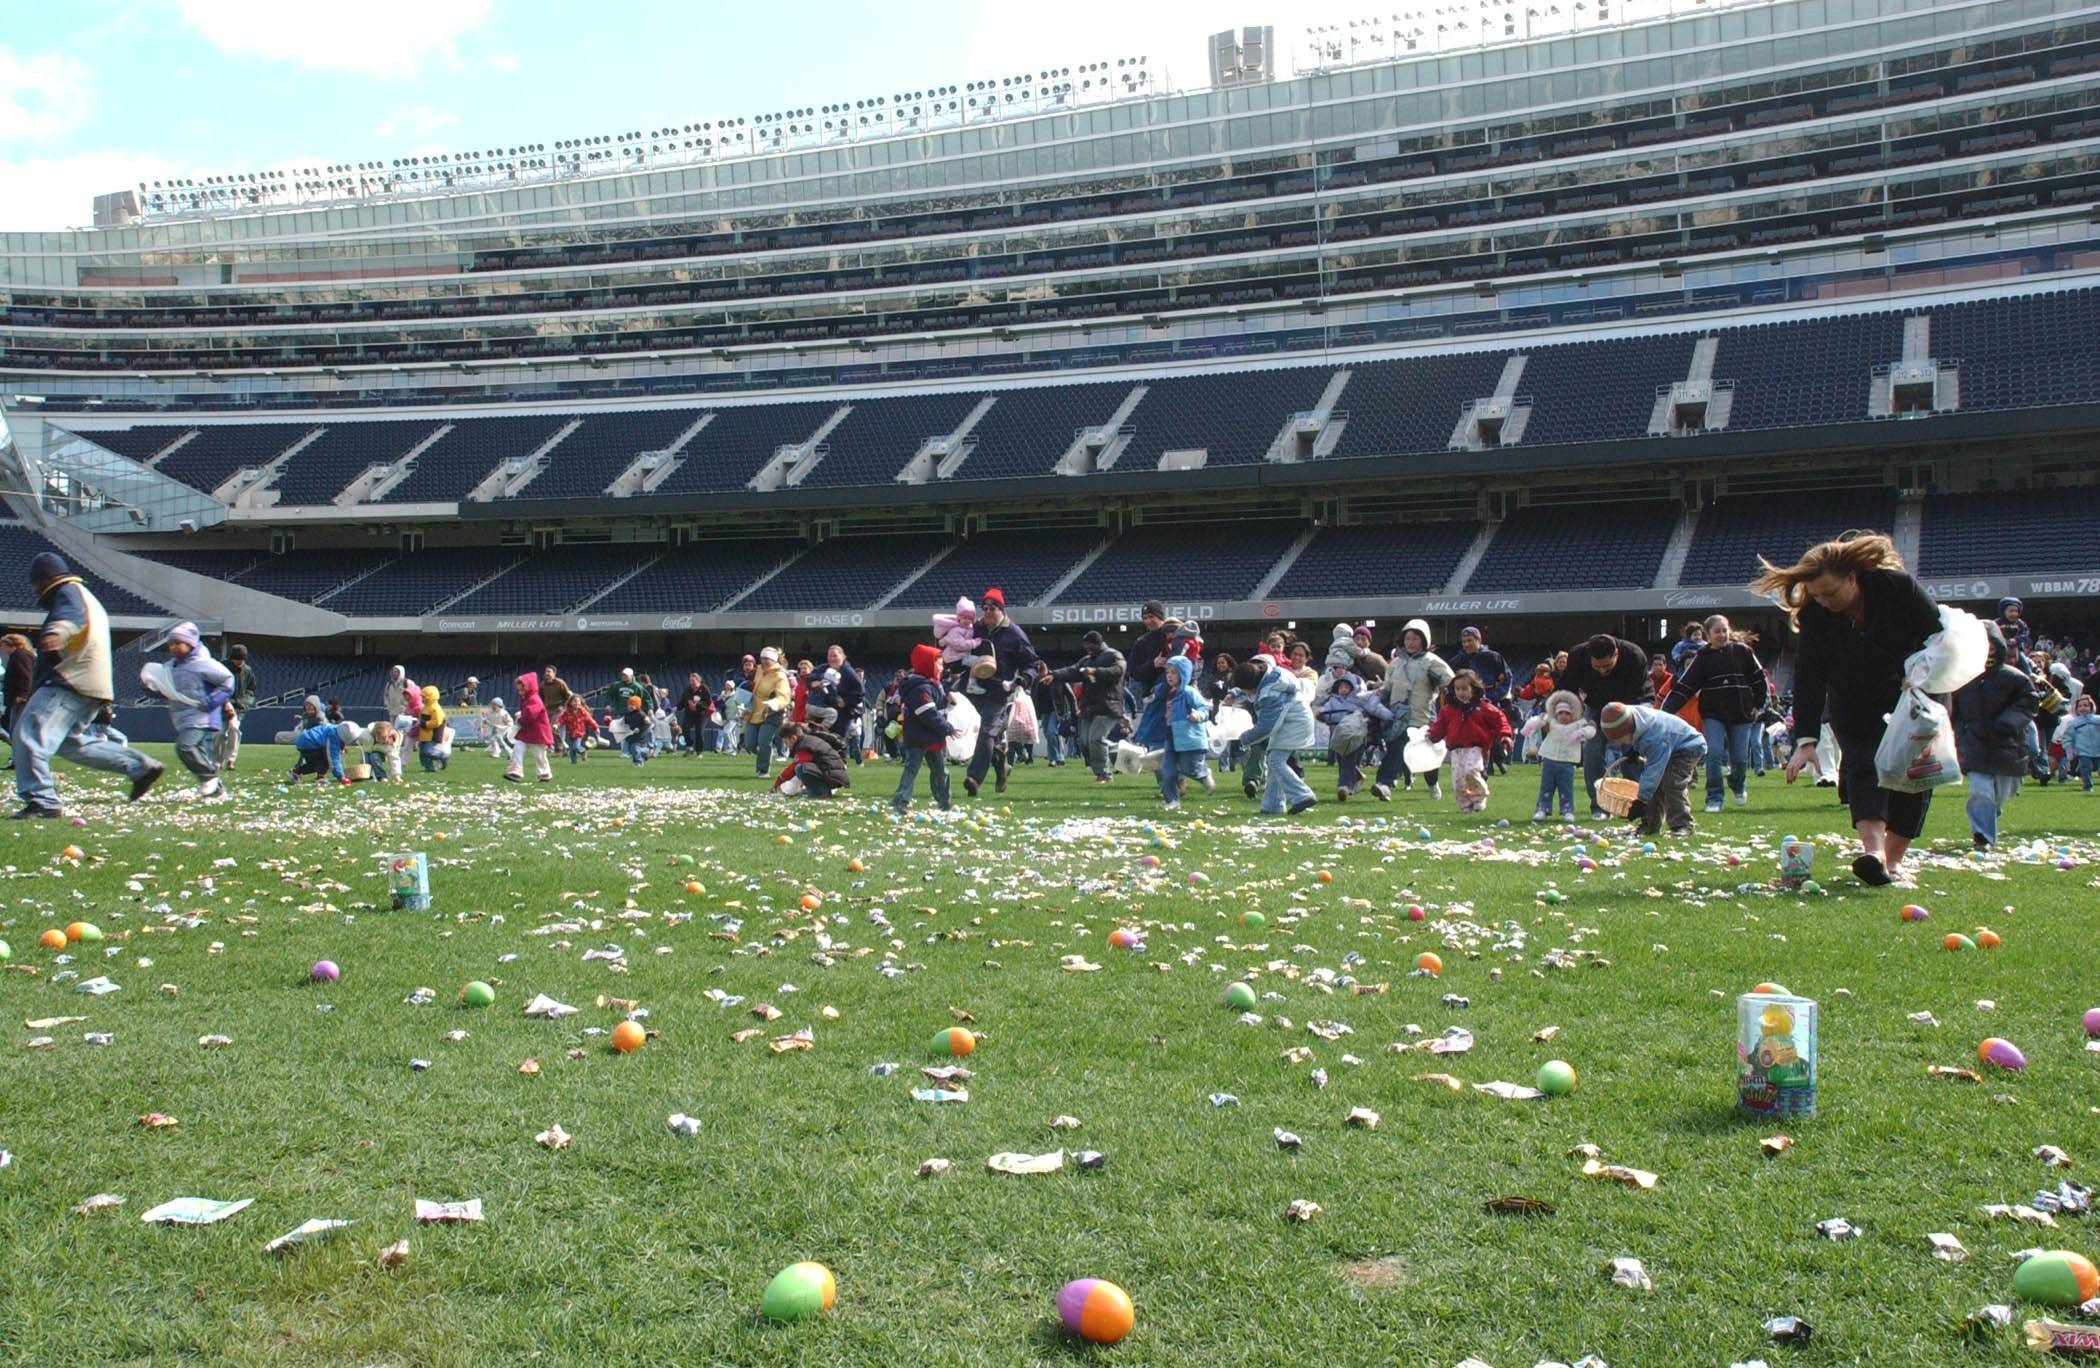 Score plenty of candy at the Spring Egg-stravaganza at Chicago's Soldier Field.